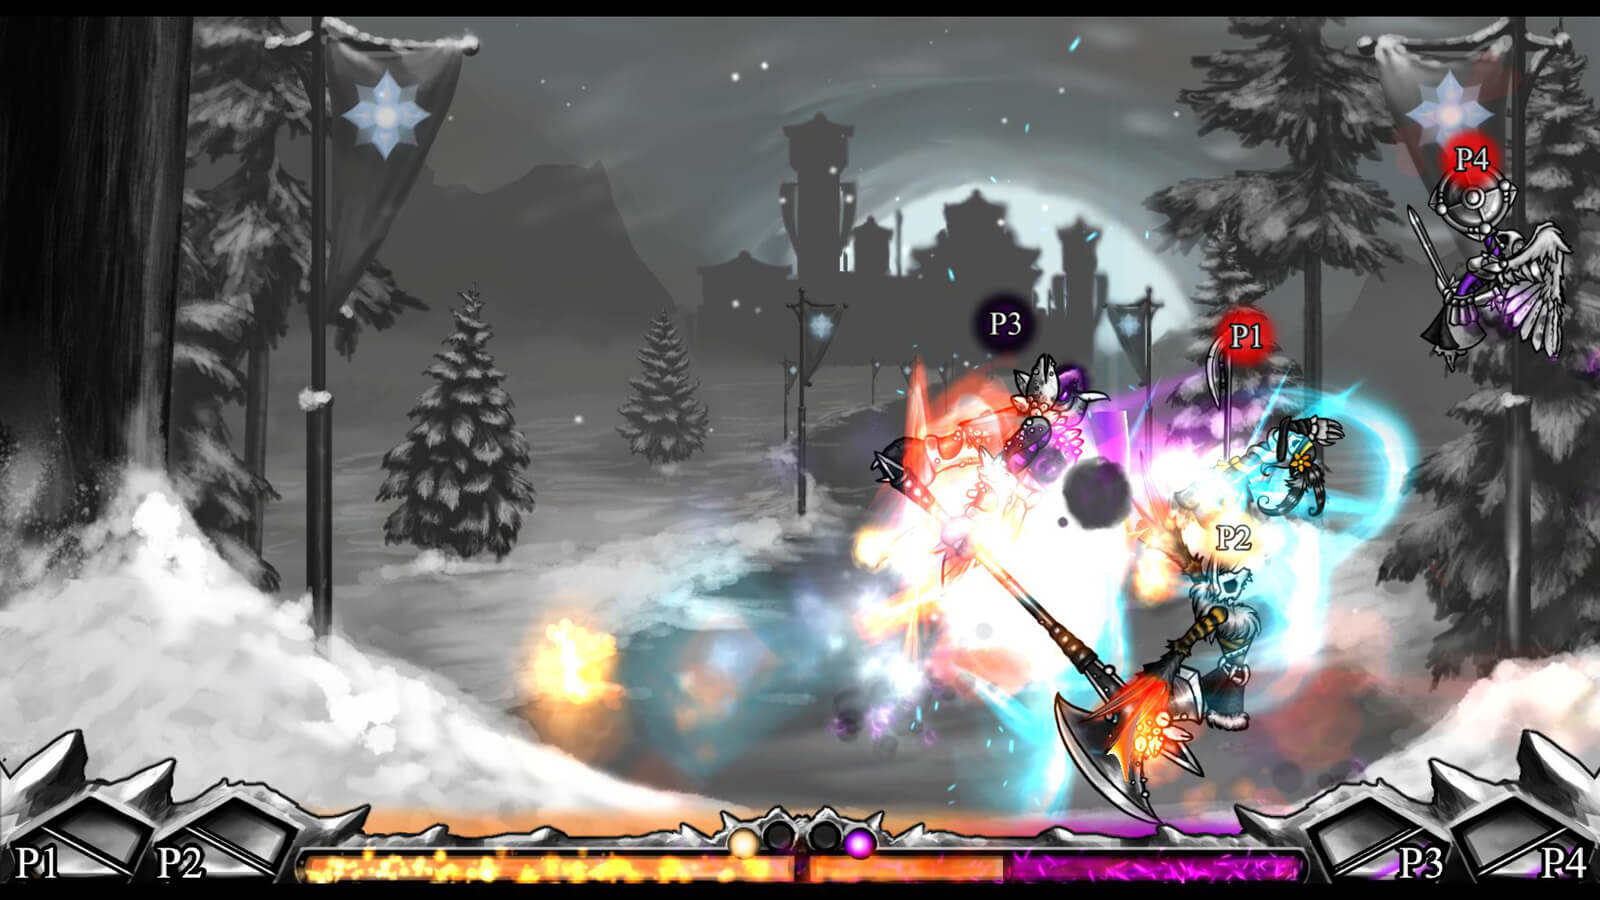 An axe-wielding fighter attacks two players at once in a snowy landscape.